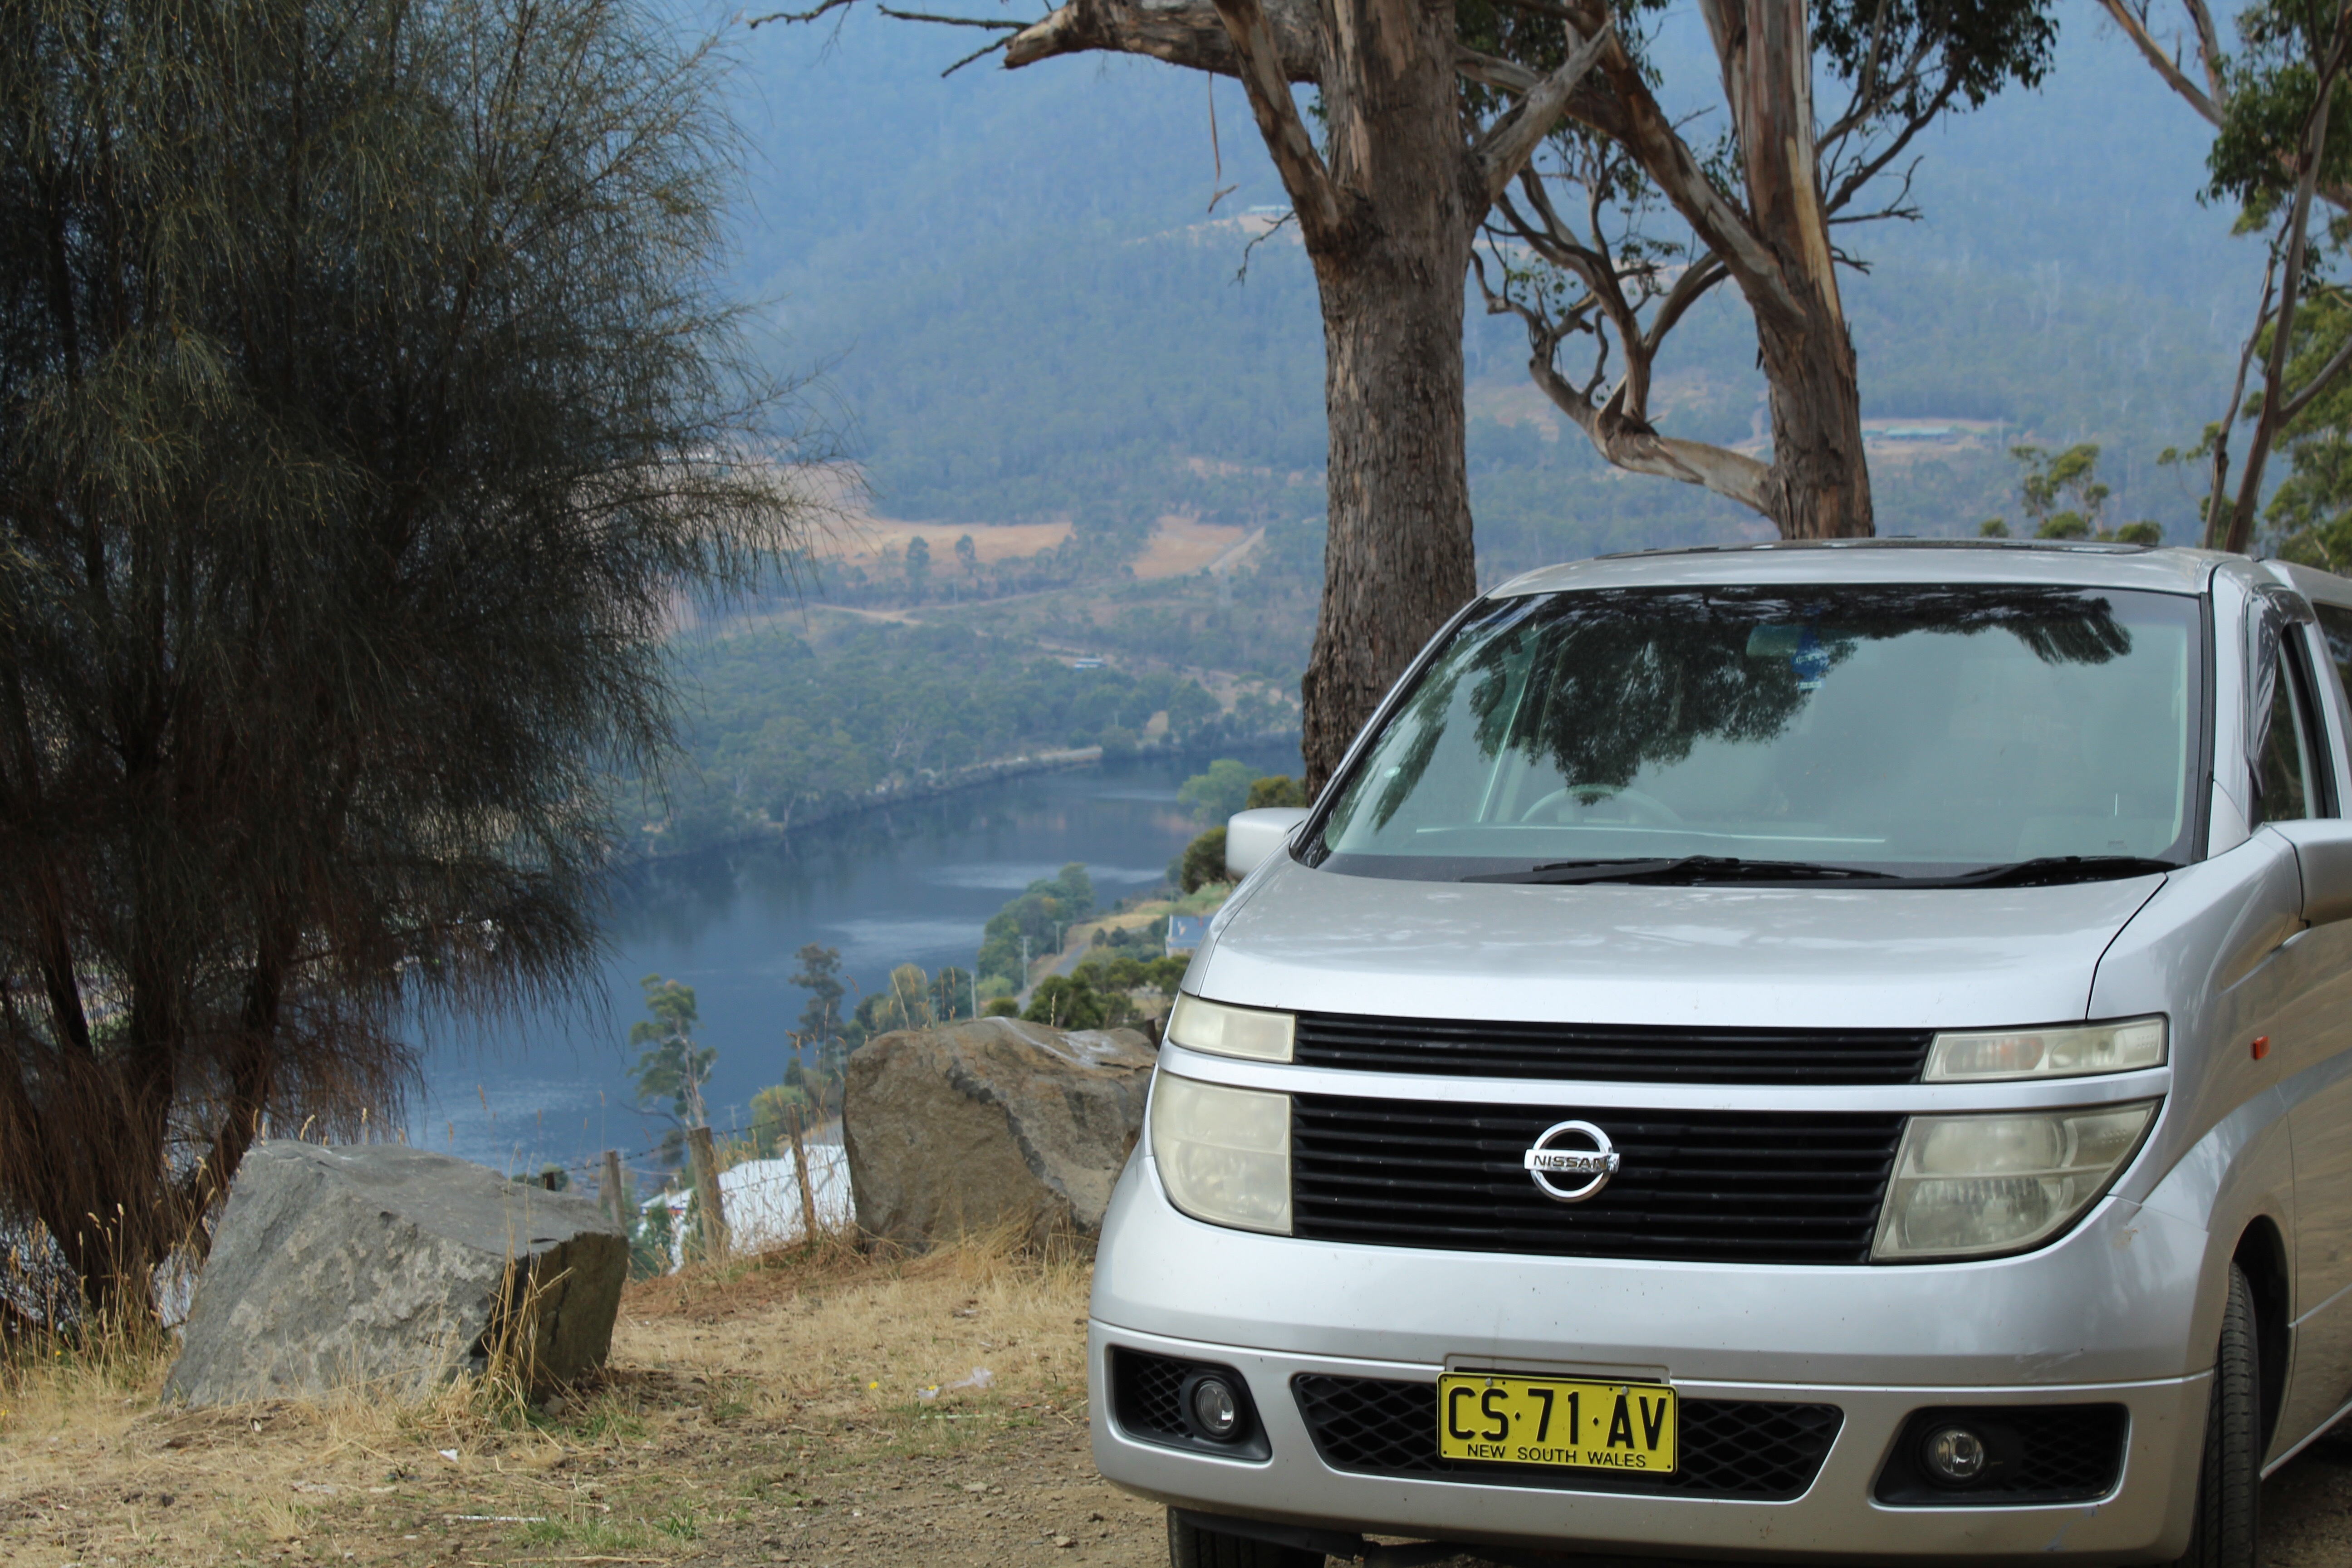 Luxury Vehicle by the Huon River